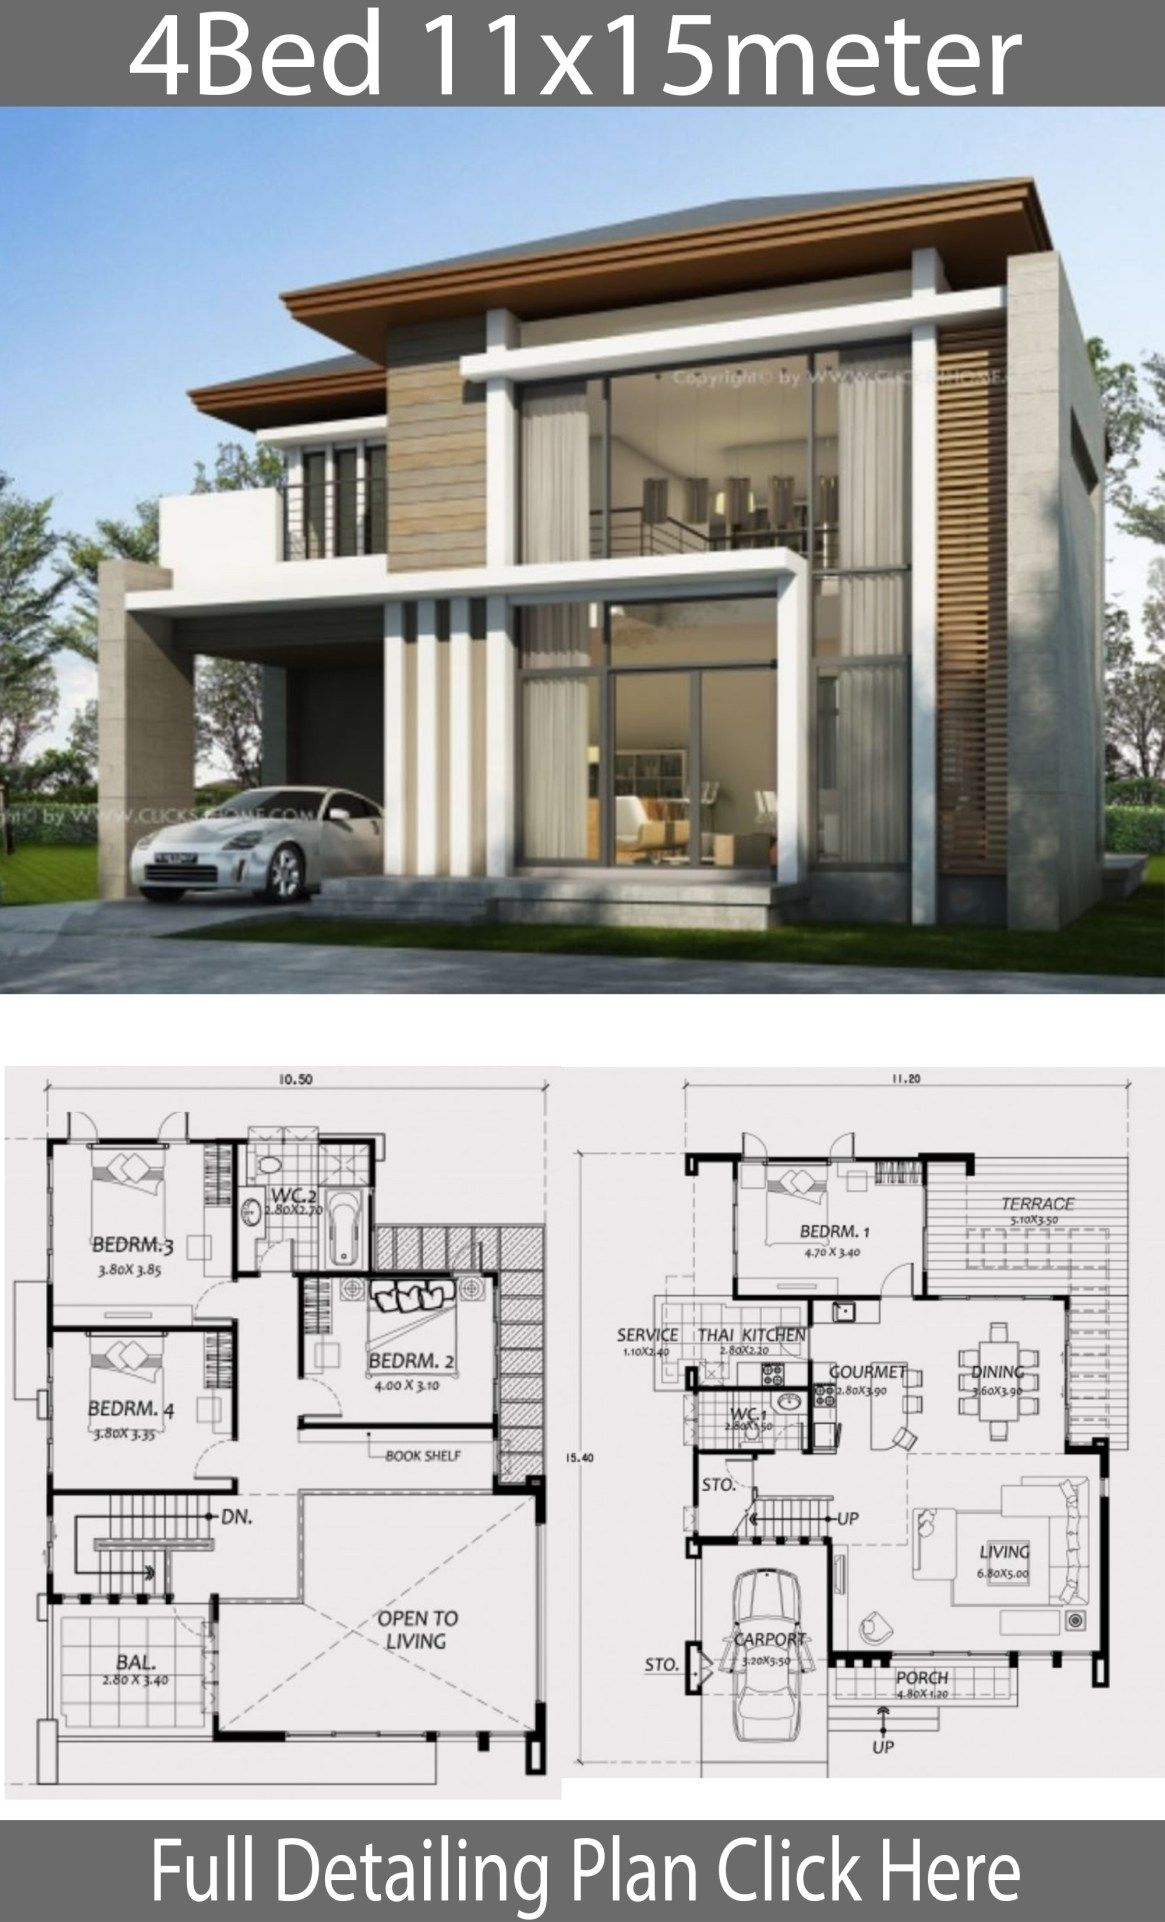 Home Design 11x15m With 4 Bedrooms Home Design With Plansearch Architectural House Plans Duplex House Plans Duplex House Design